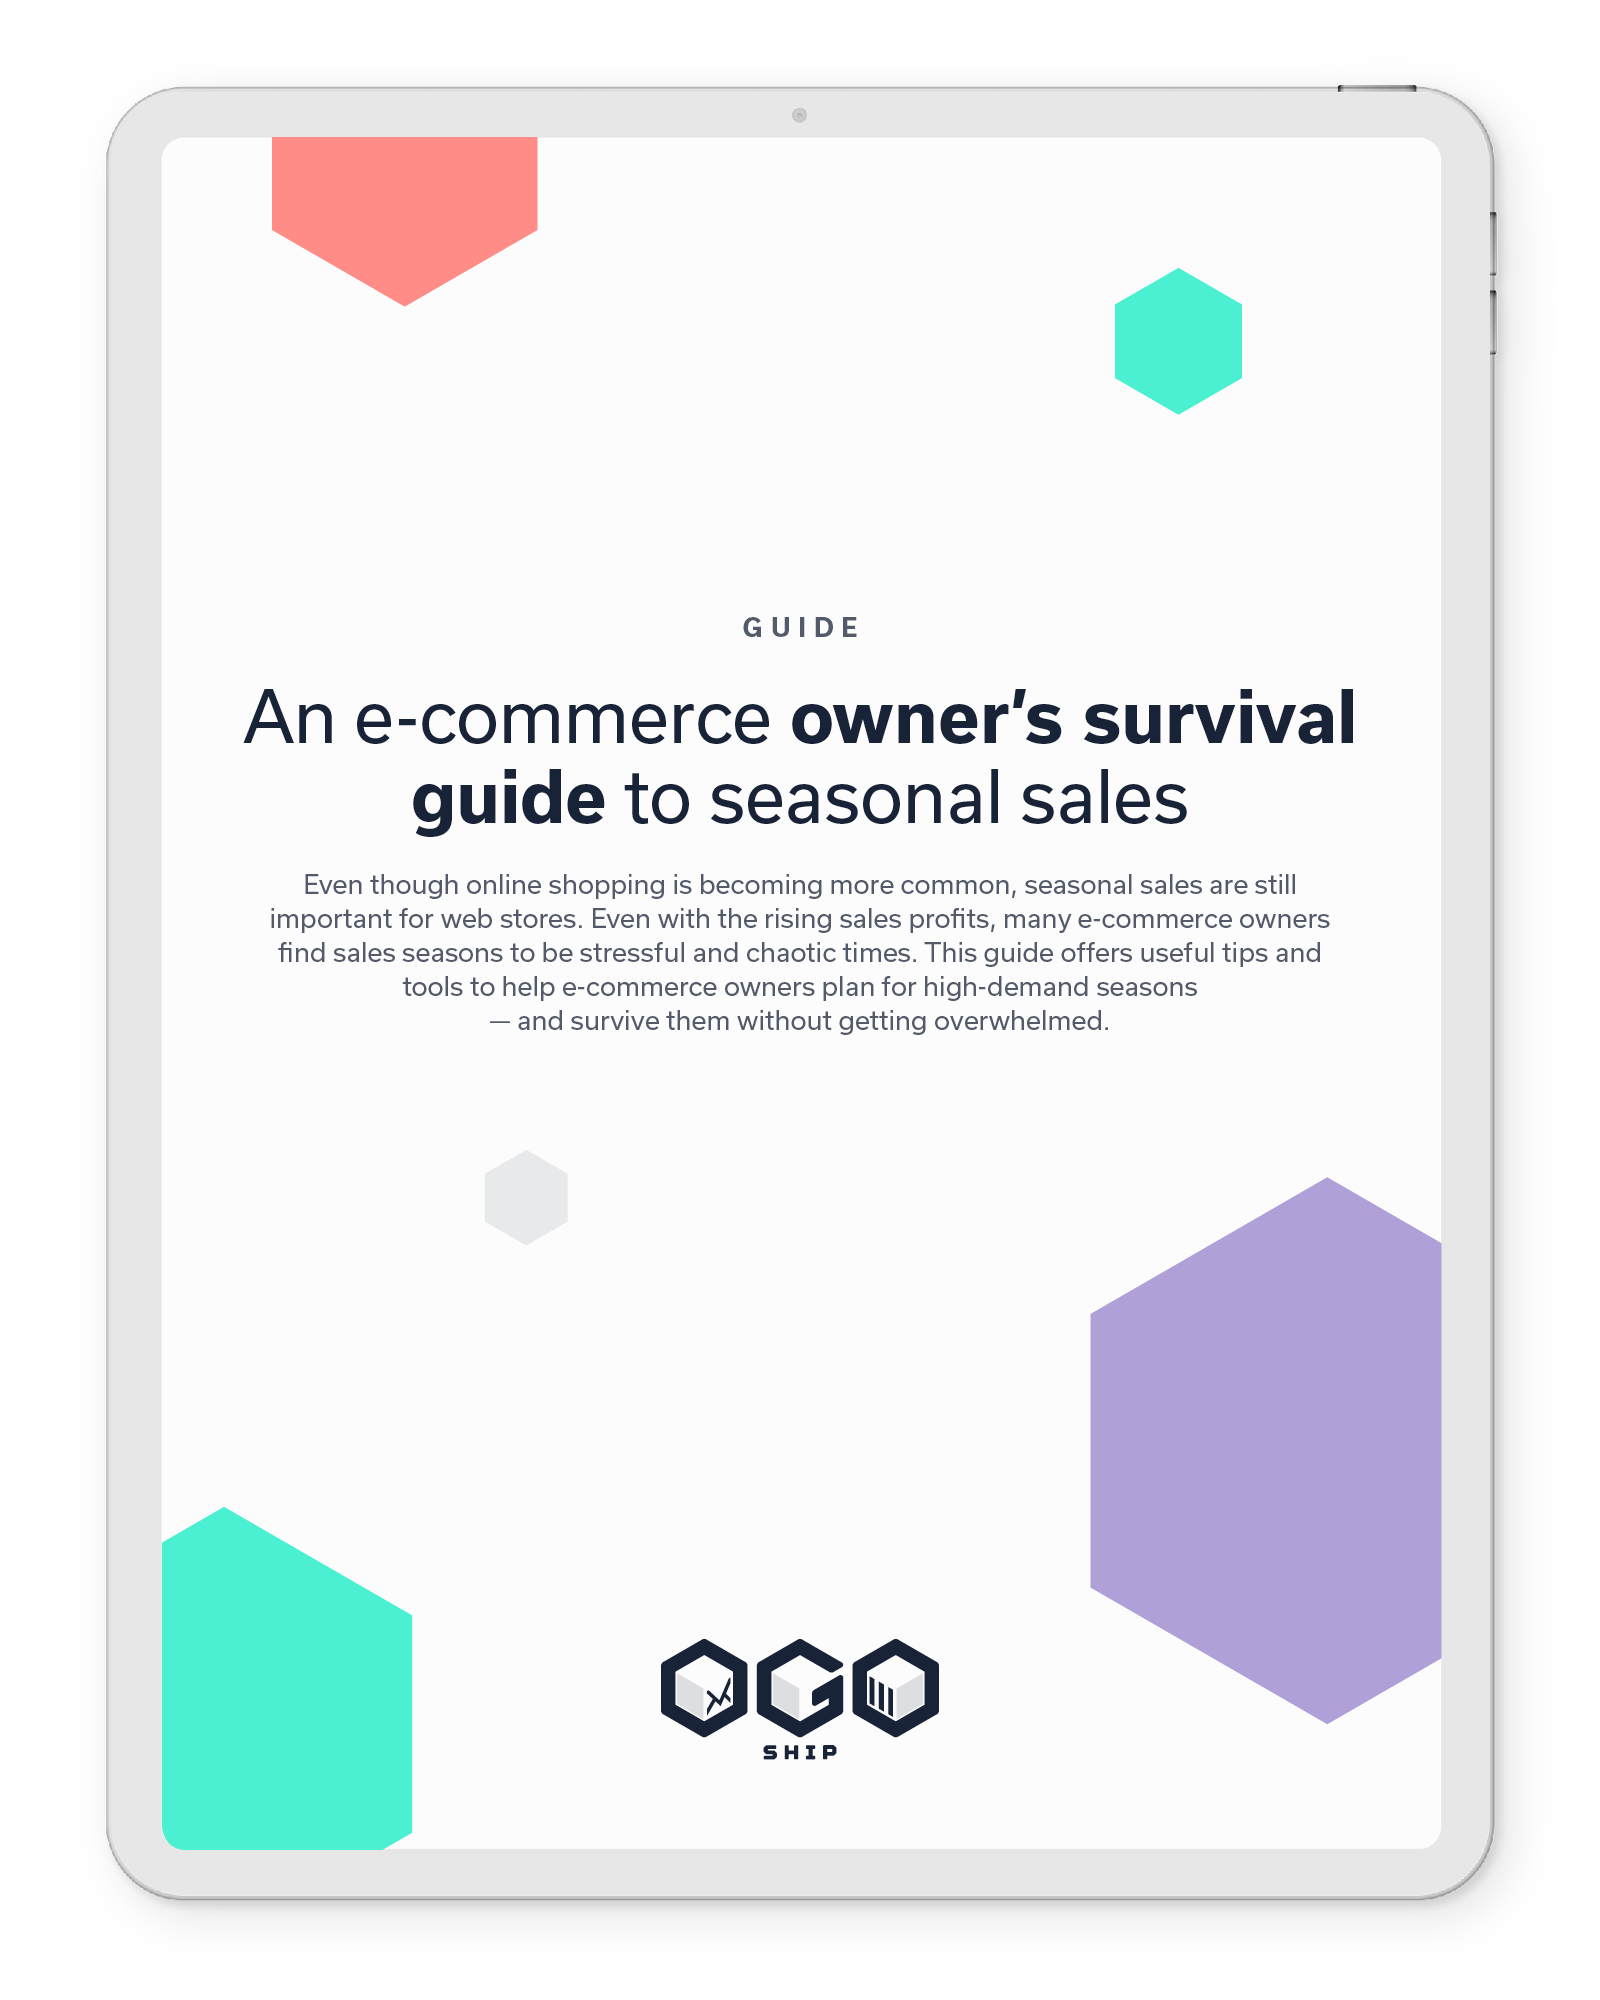 an-e-commerce-owners-survival-guide-to-seasonal-sales